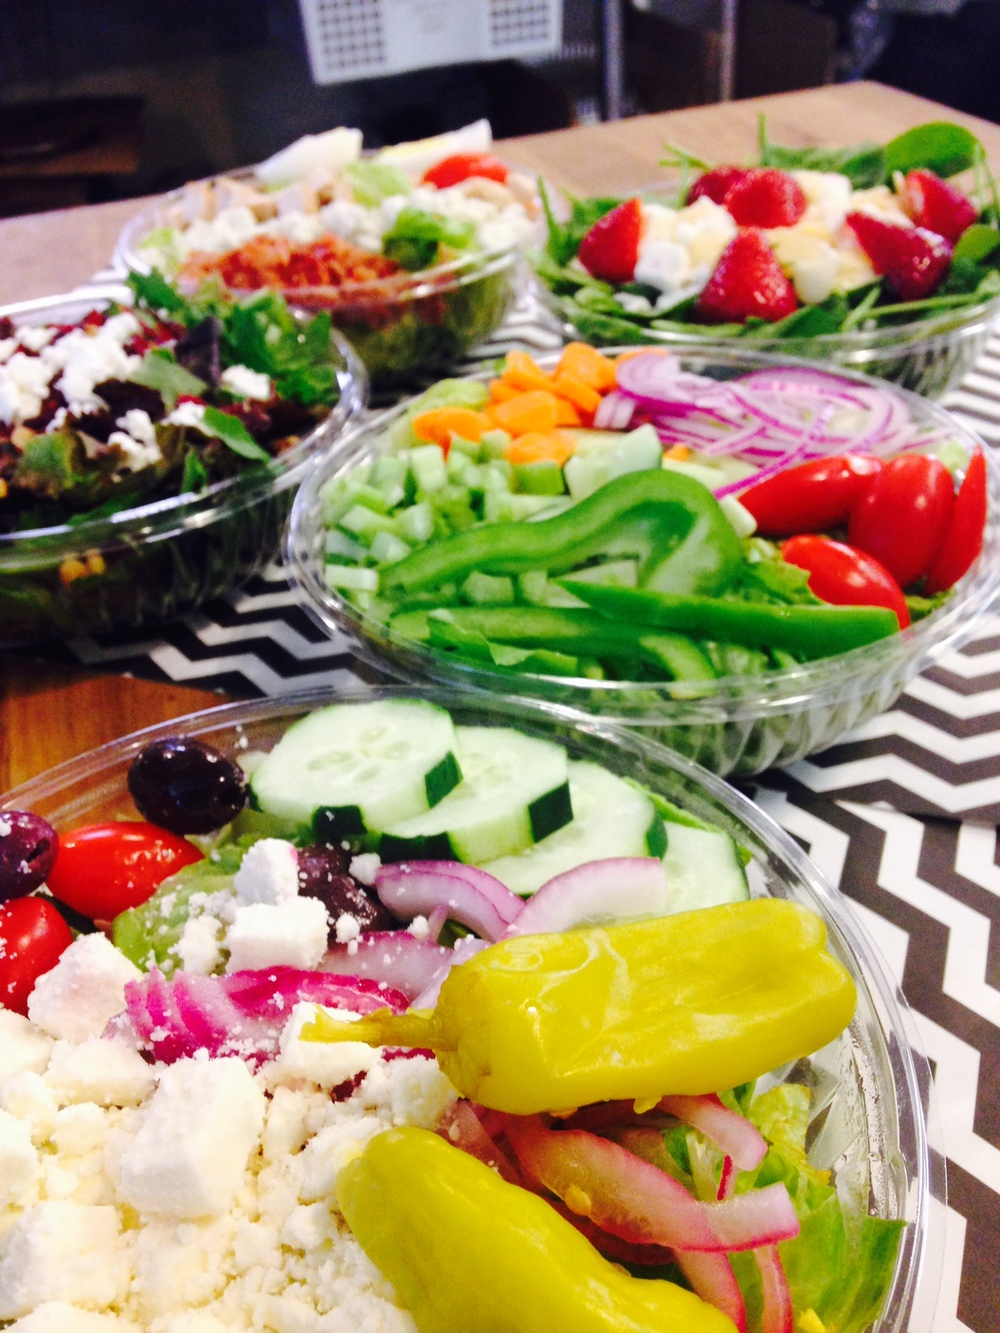 Greek salad, garden salad & more!